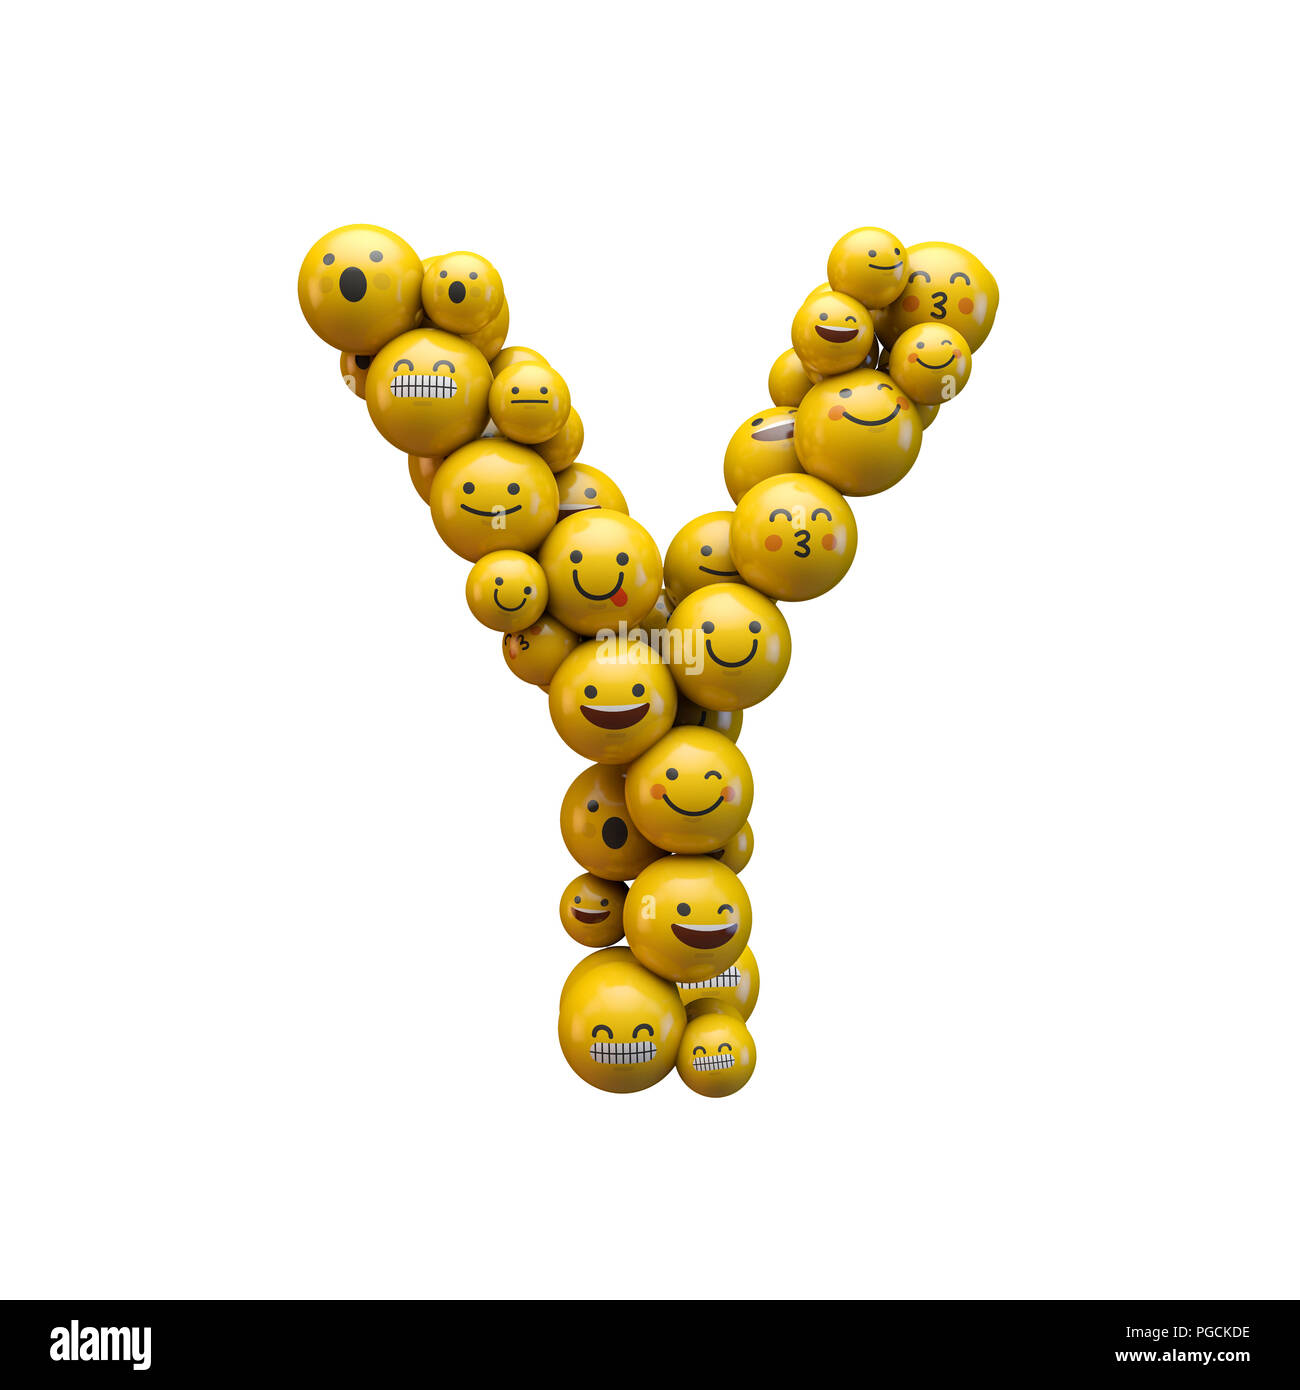 Letter Y Emoji Character Font 3d Rendering Stock Photo 216637610